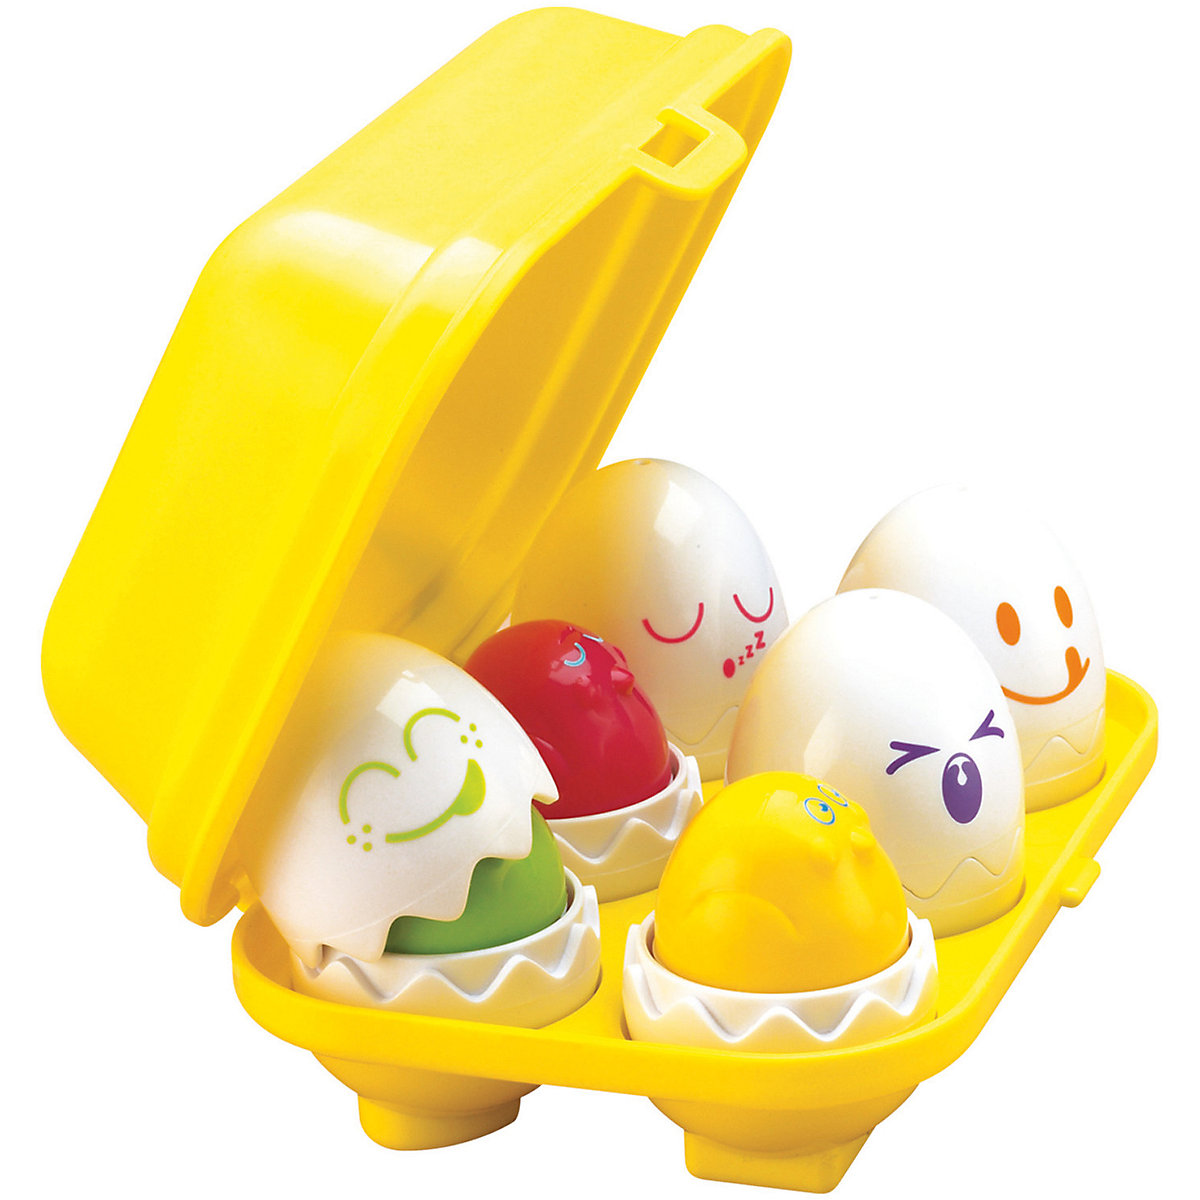 Bath Toy TOMY 1602928 Bathing Bath toys for bathroom on suckers Rubber Duck Doll Kids bath toy tomy 4599020 bathing bath toys for bathroom on suckers rubber duck doll kids